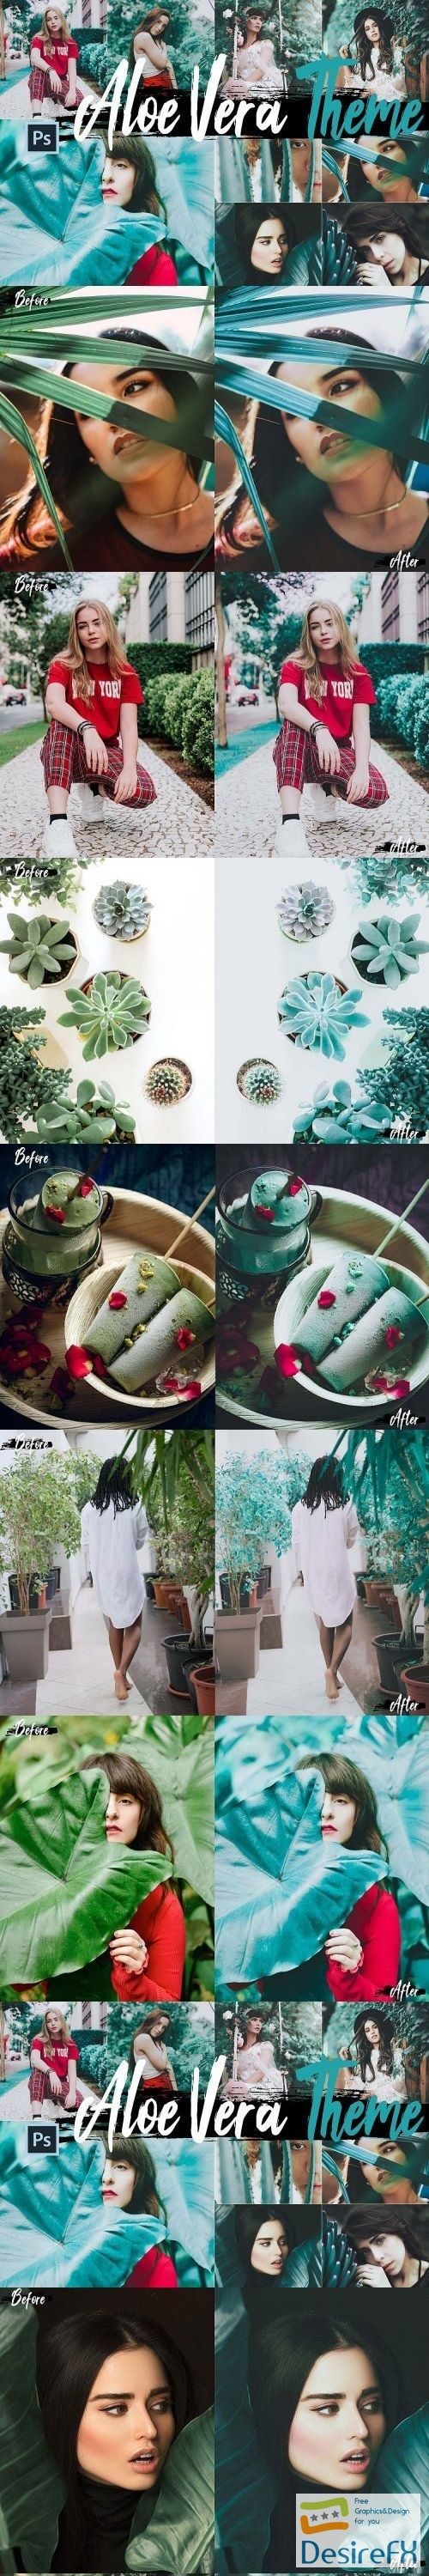 actions-atn - Neo Aloe Vera Theme Color Grading photoshop actions, ACR LUT - 272132